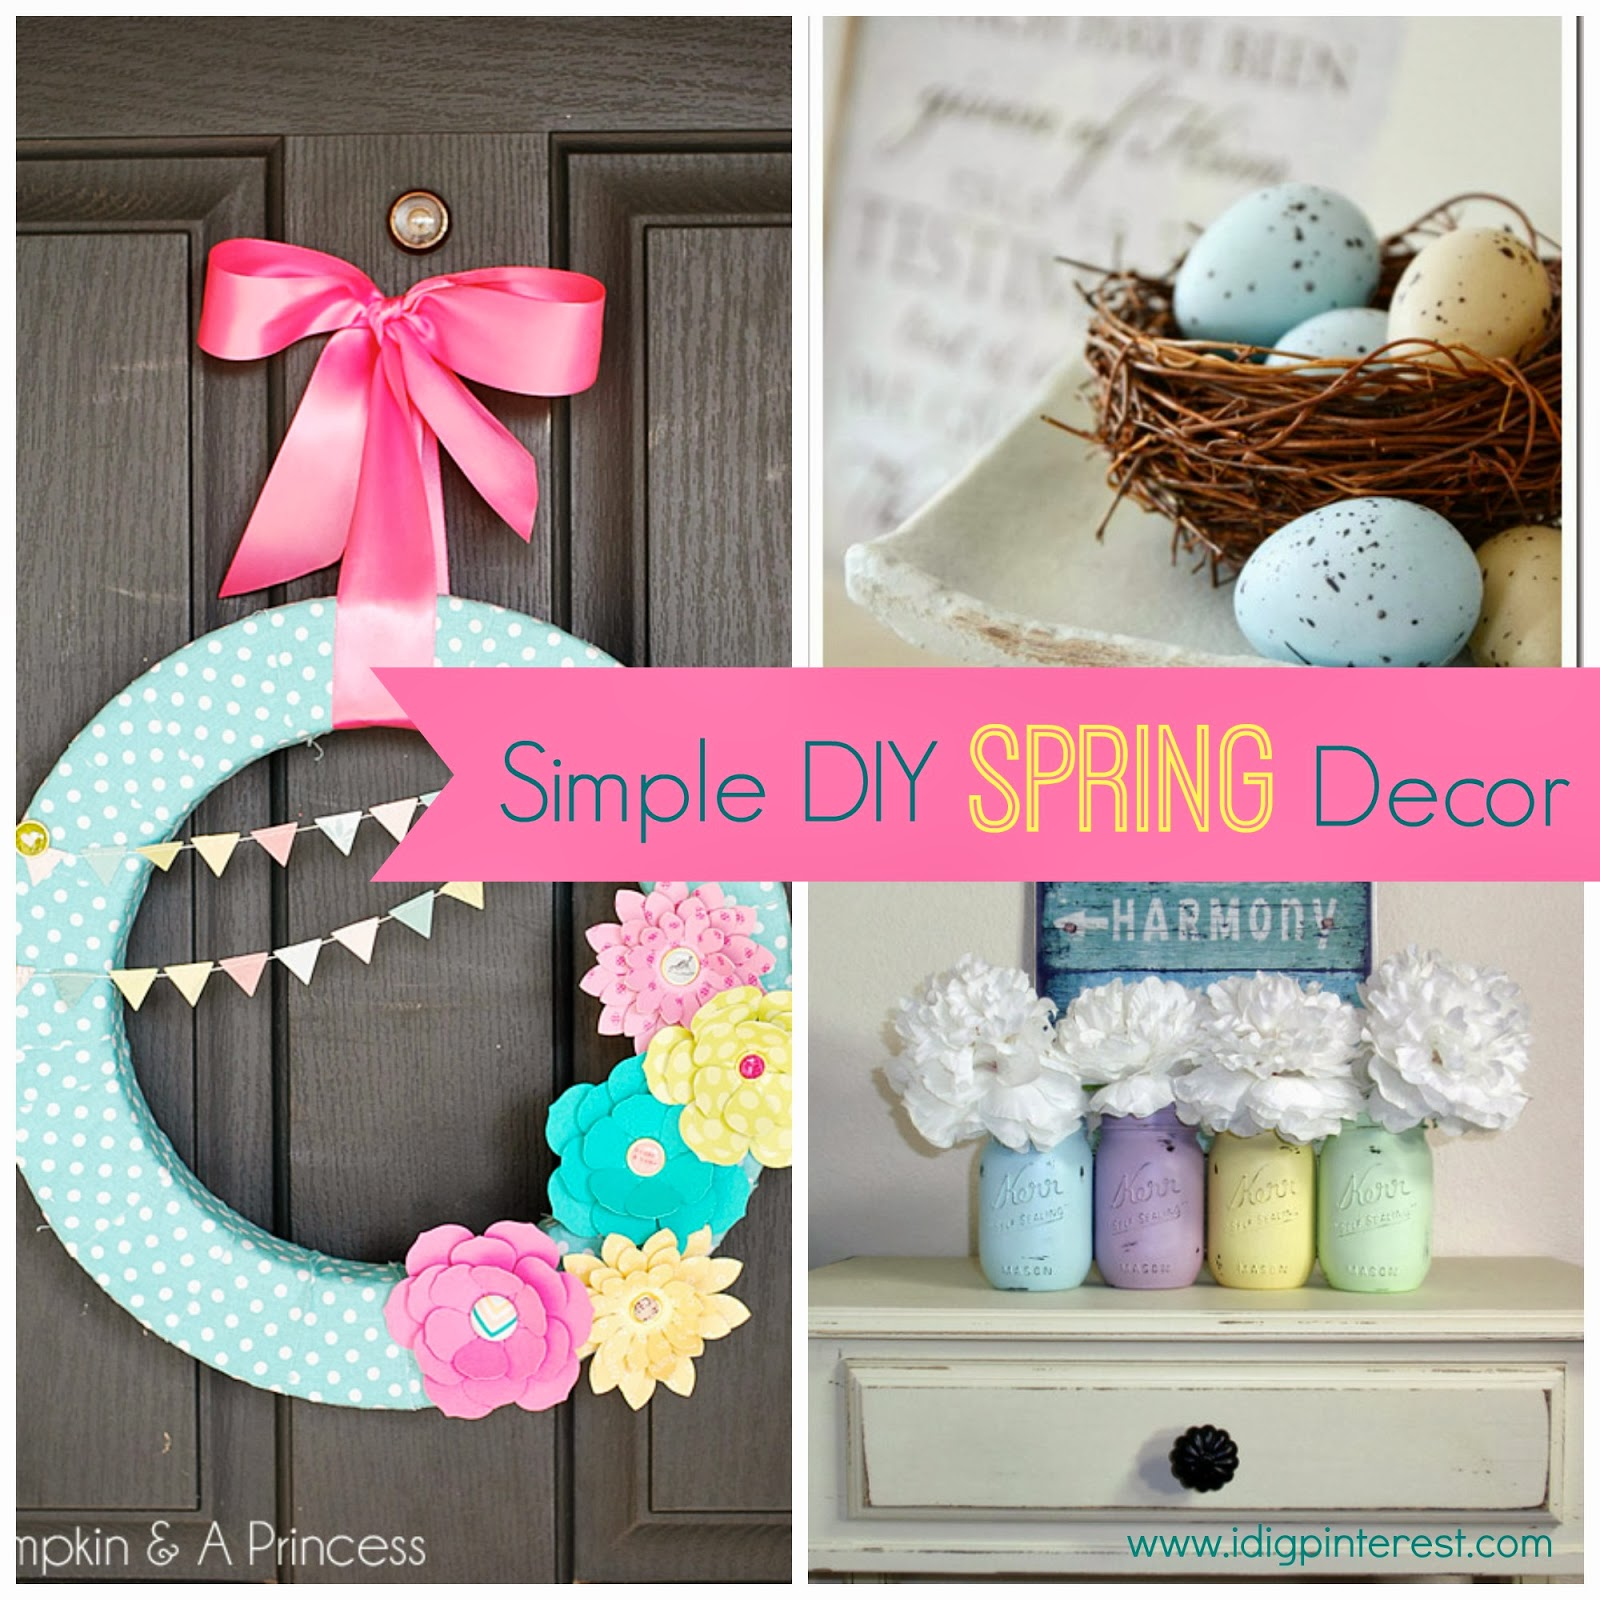 Spring Design Ideas: I Dig Pinterest: Simple DIY Spring Decor Ideas